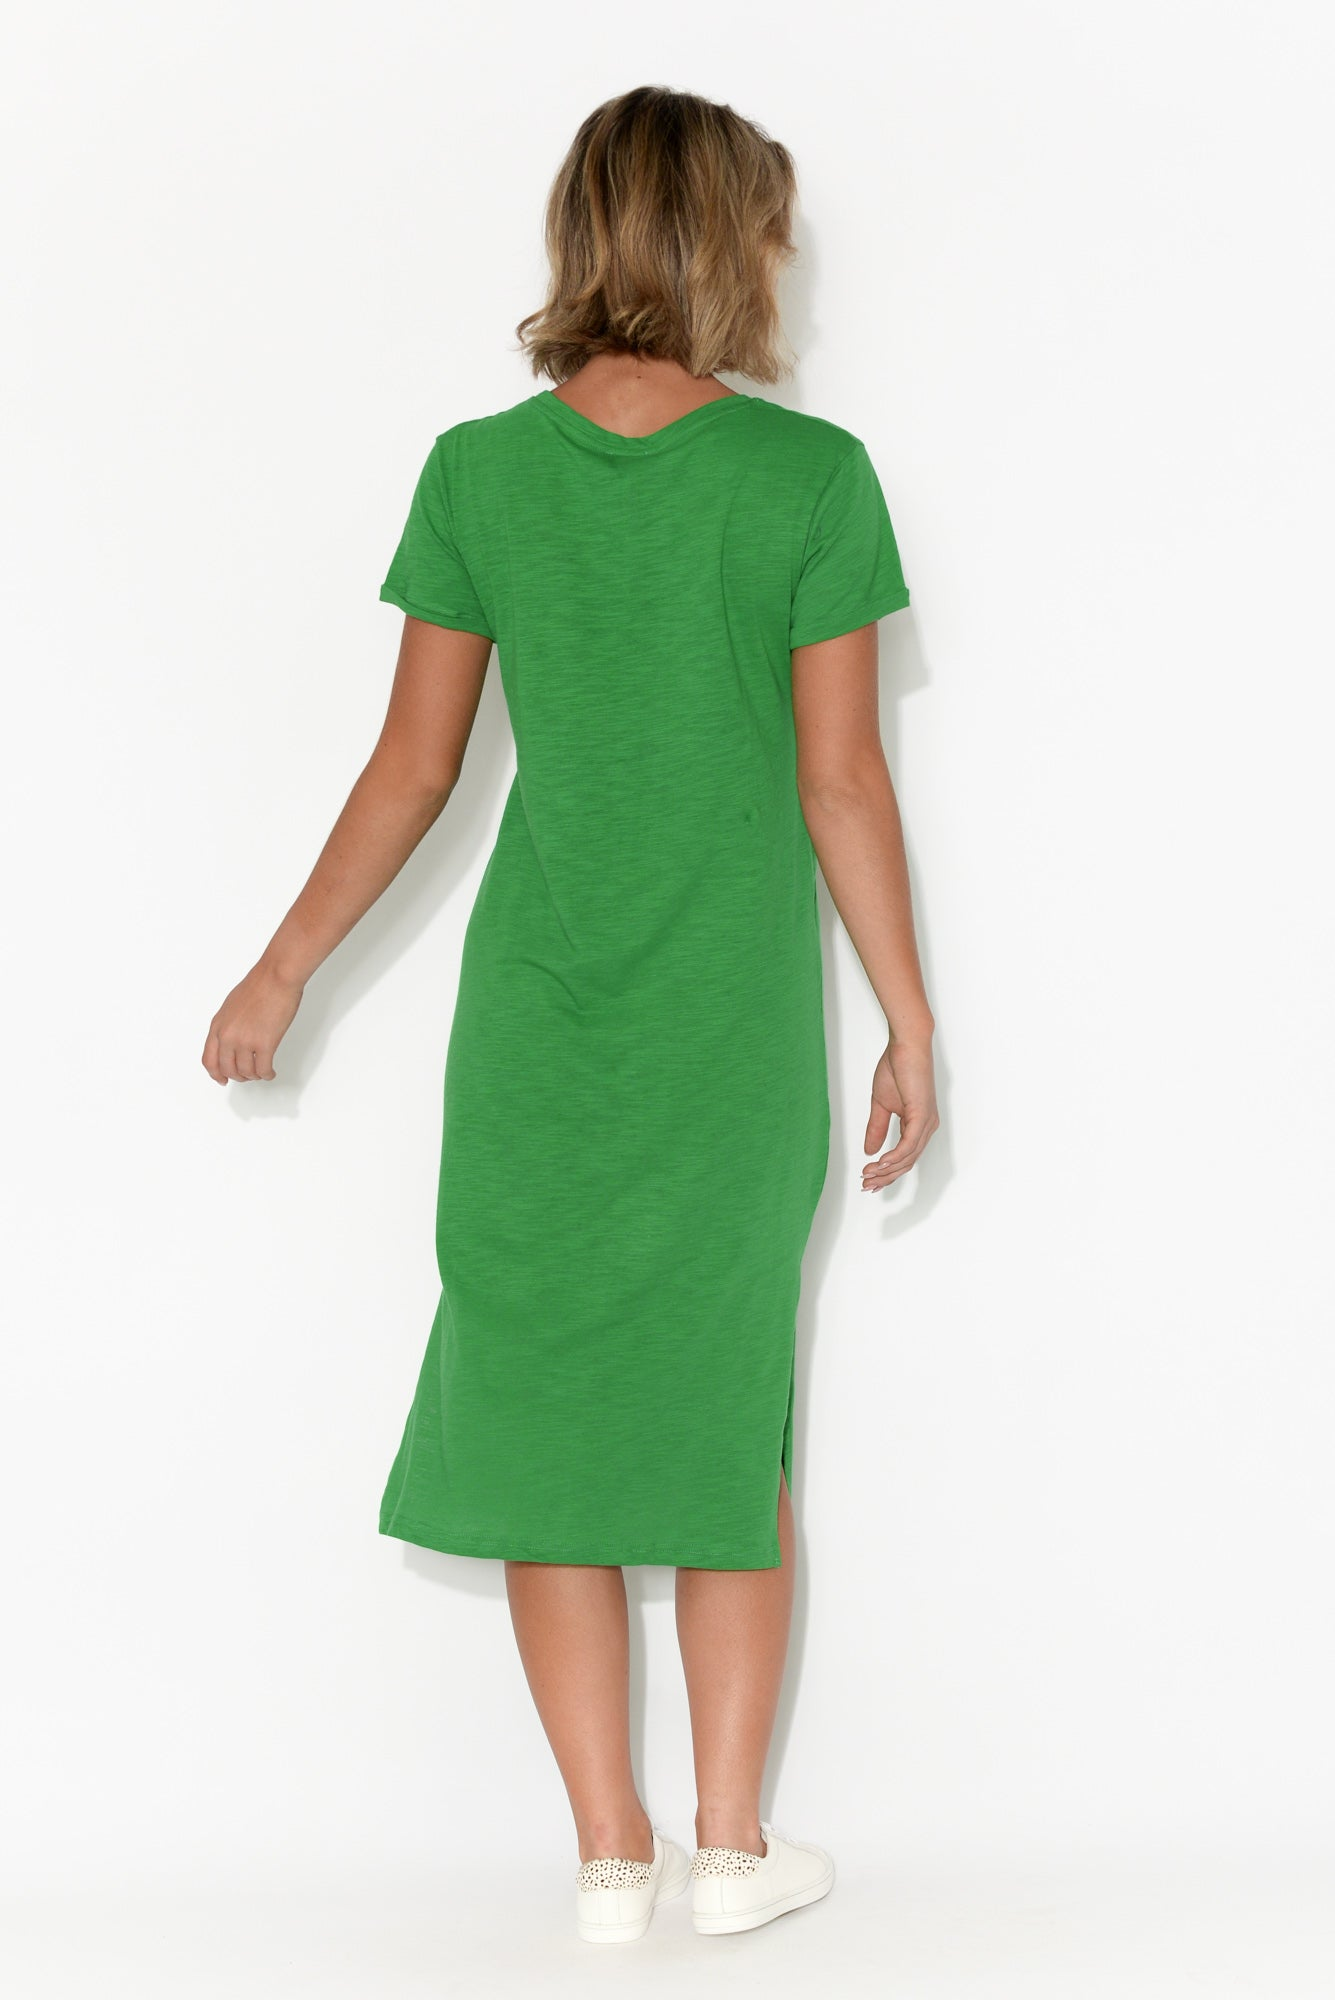 Zoe Green Cotton Slub Dress